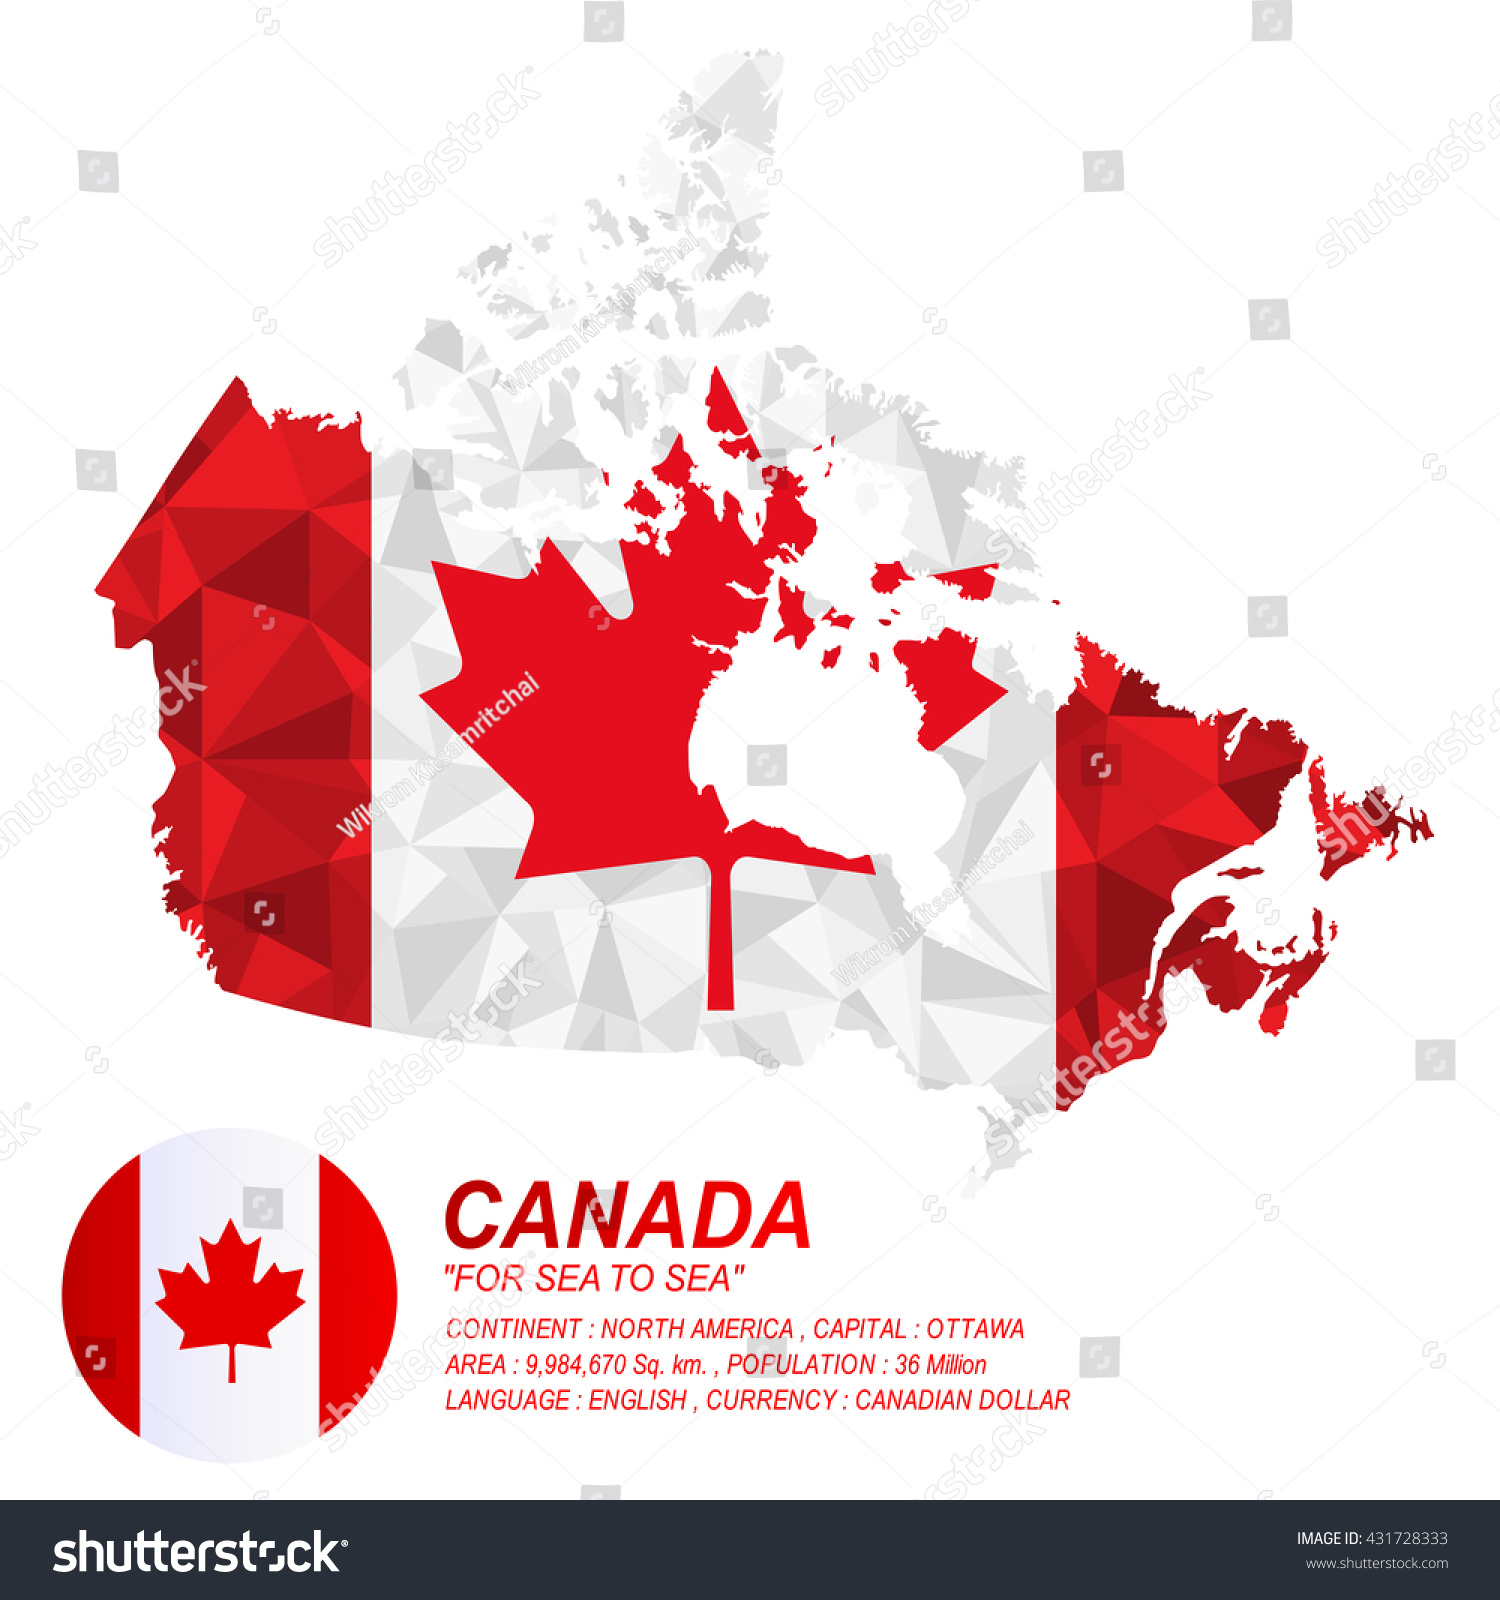 canadian flag overlay on canadian map stock vector 431728333